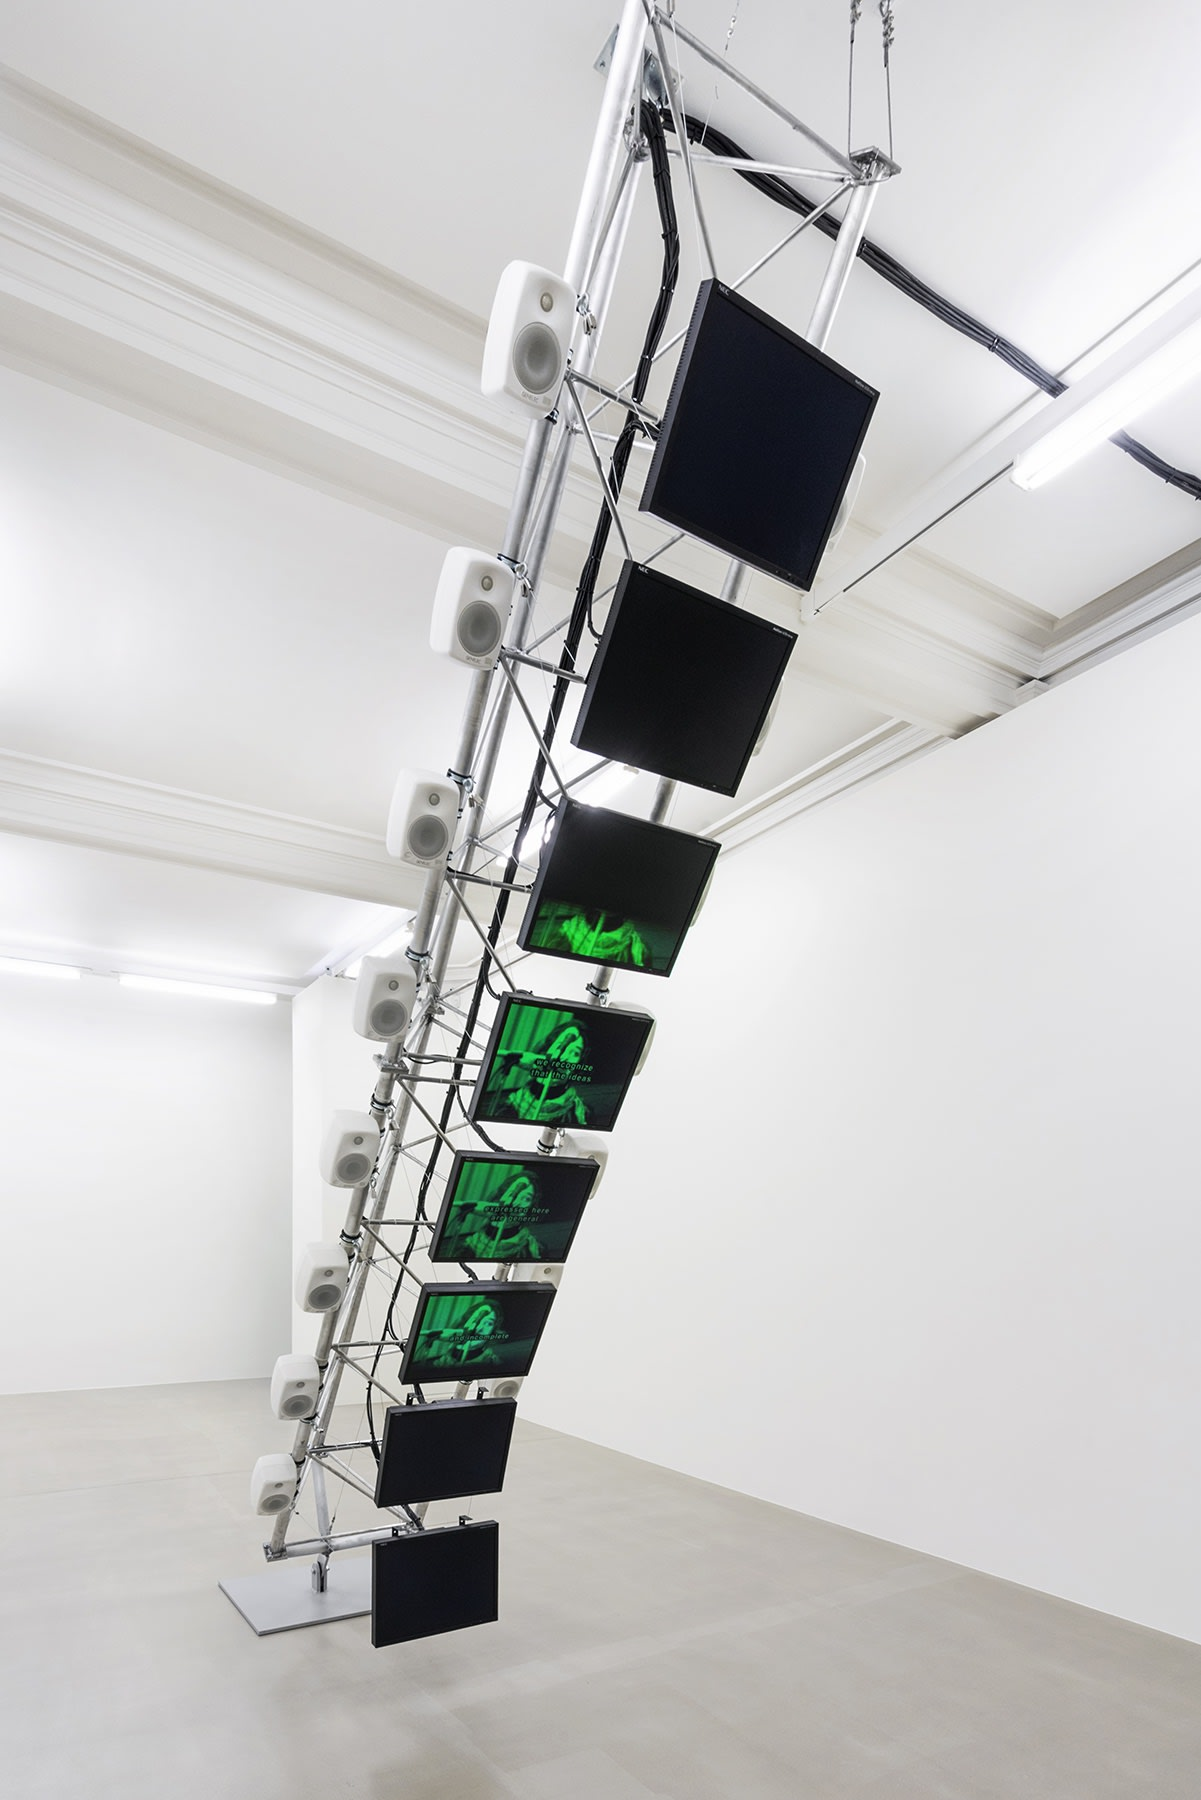 8 flatscreen monitors are displayed vertically on a metal armature in the center of a white gallery space.